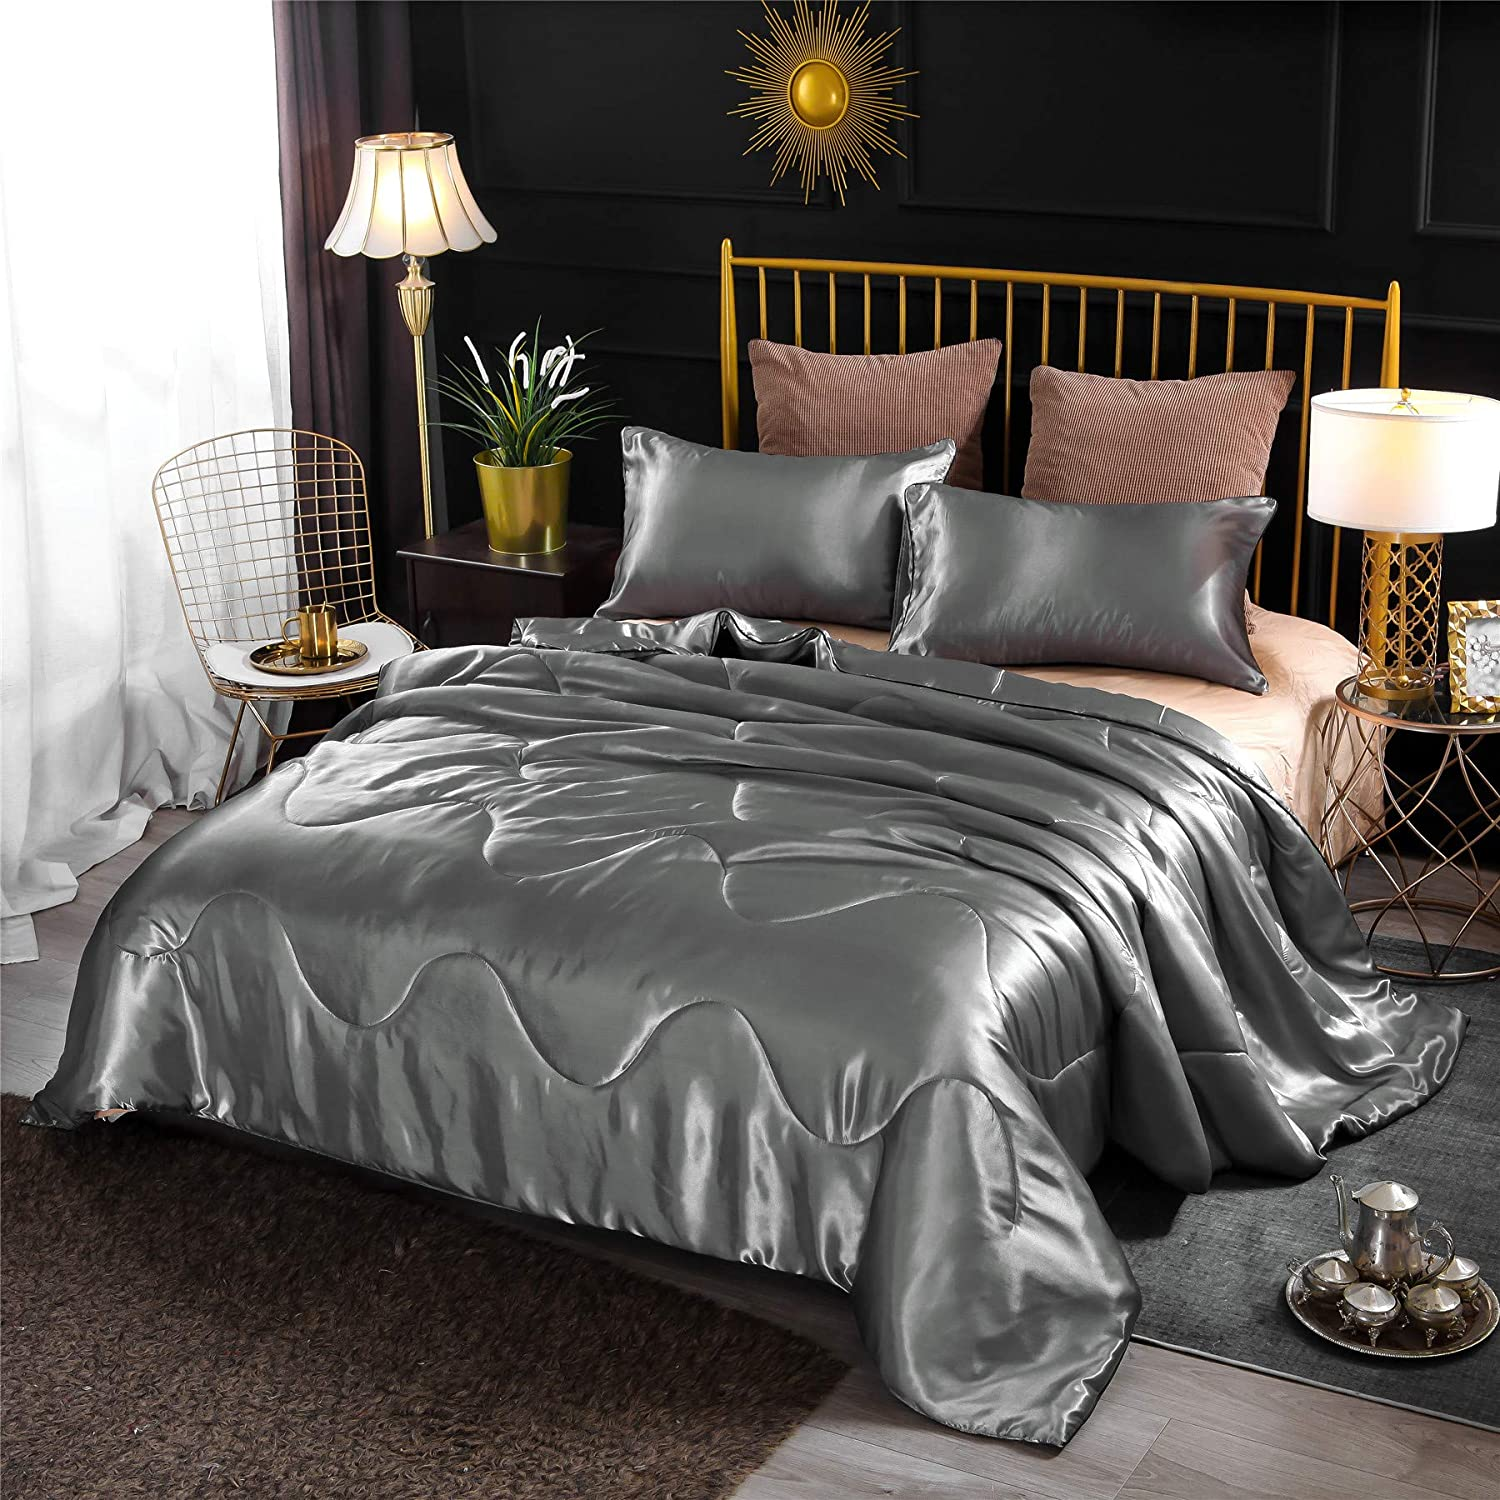 A Nice Night Satin Silky Soft Quilt Sexy Luxury Super Soft Microfiber Bedding Comforter Set Full/Queen, Light Weighted Silver